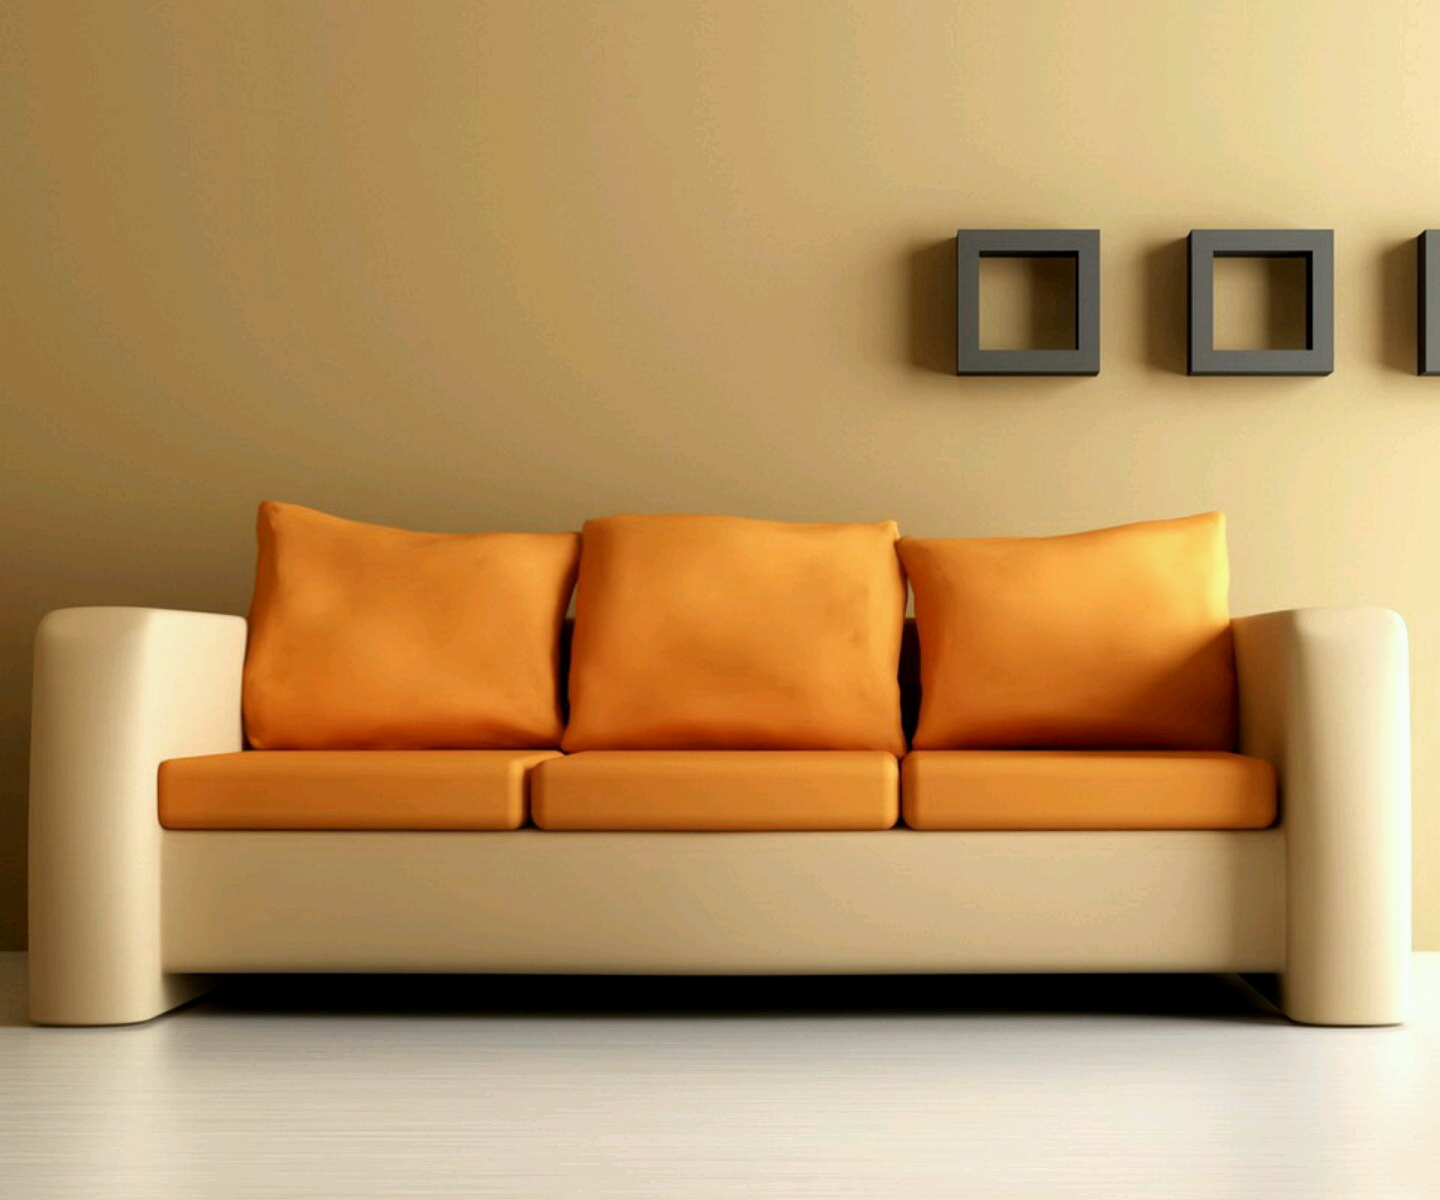 Design Back Modular Floyd Sofa